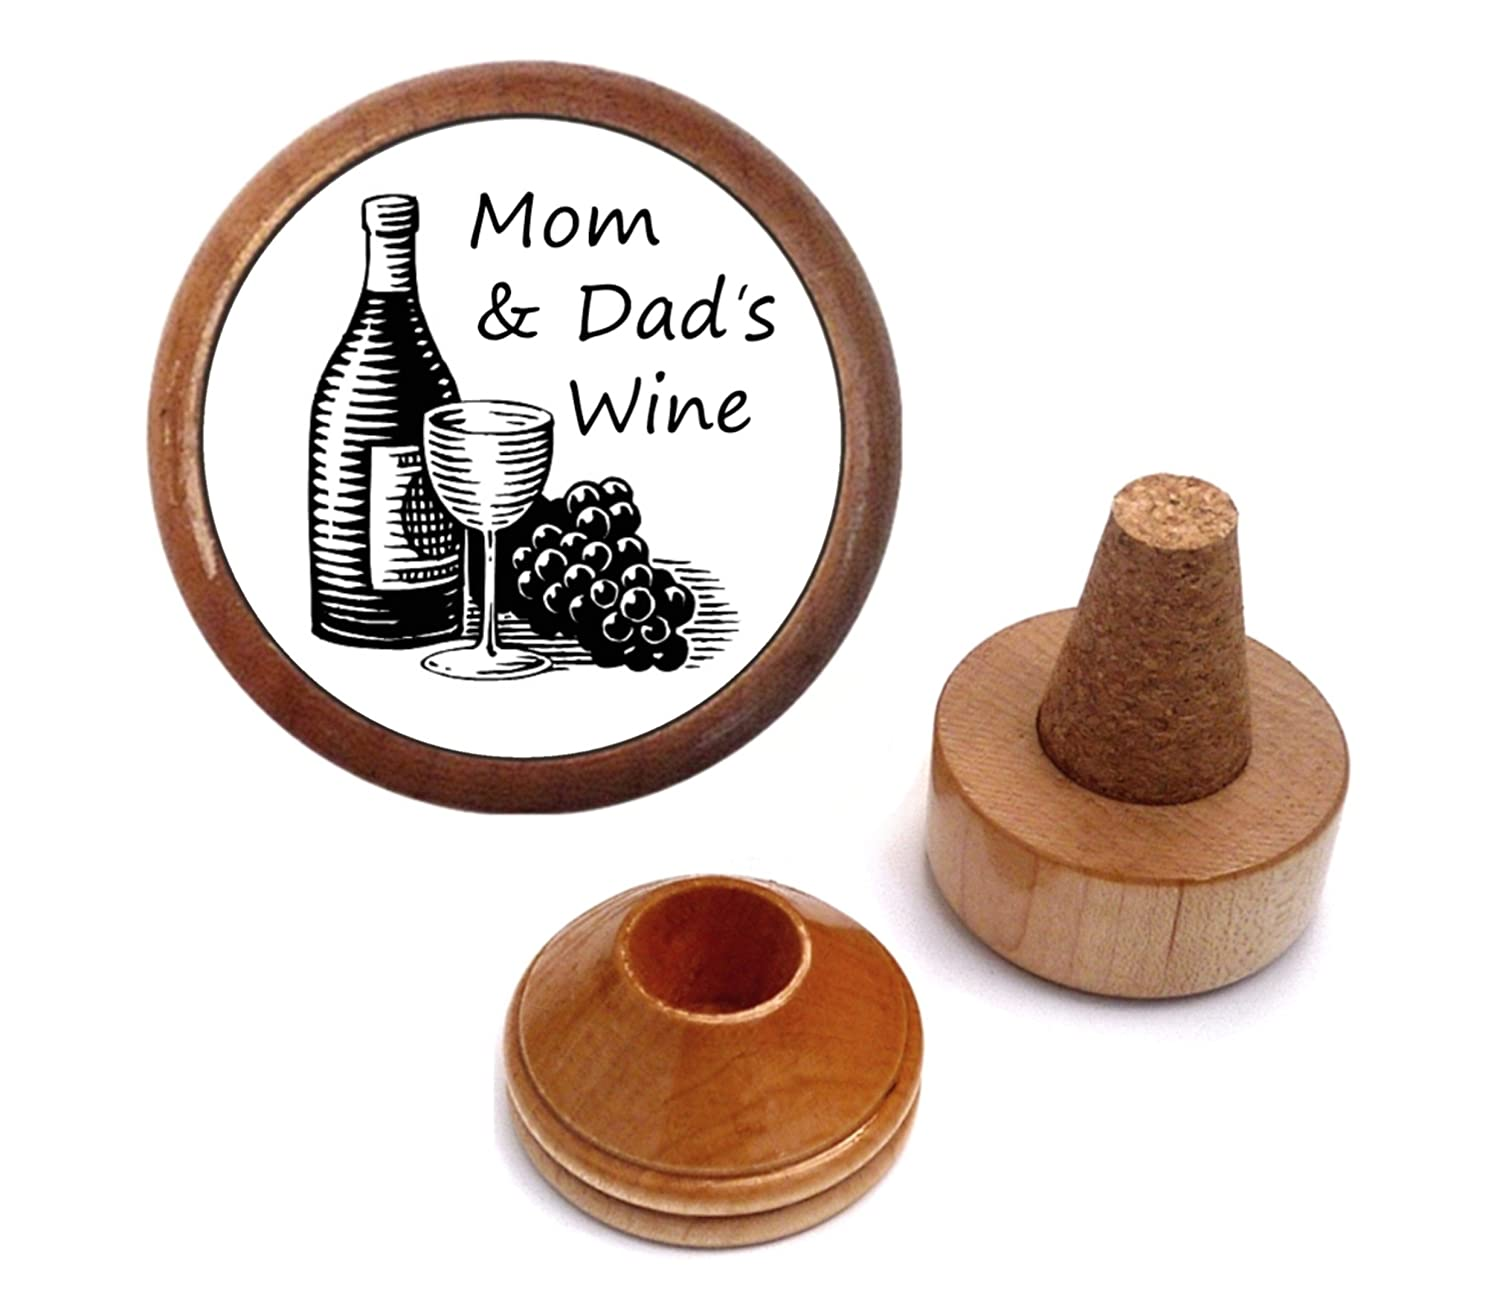 Personalized Mom and Dad gift idea | Wine Bottle stopper and cork holder